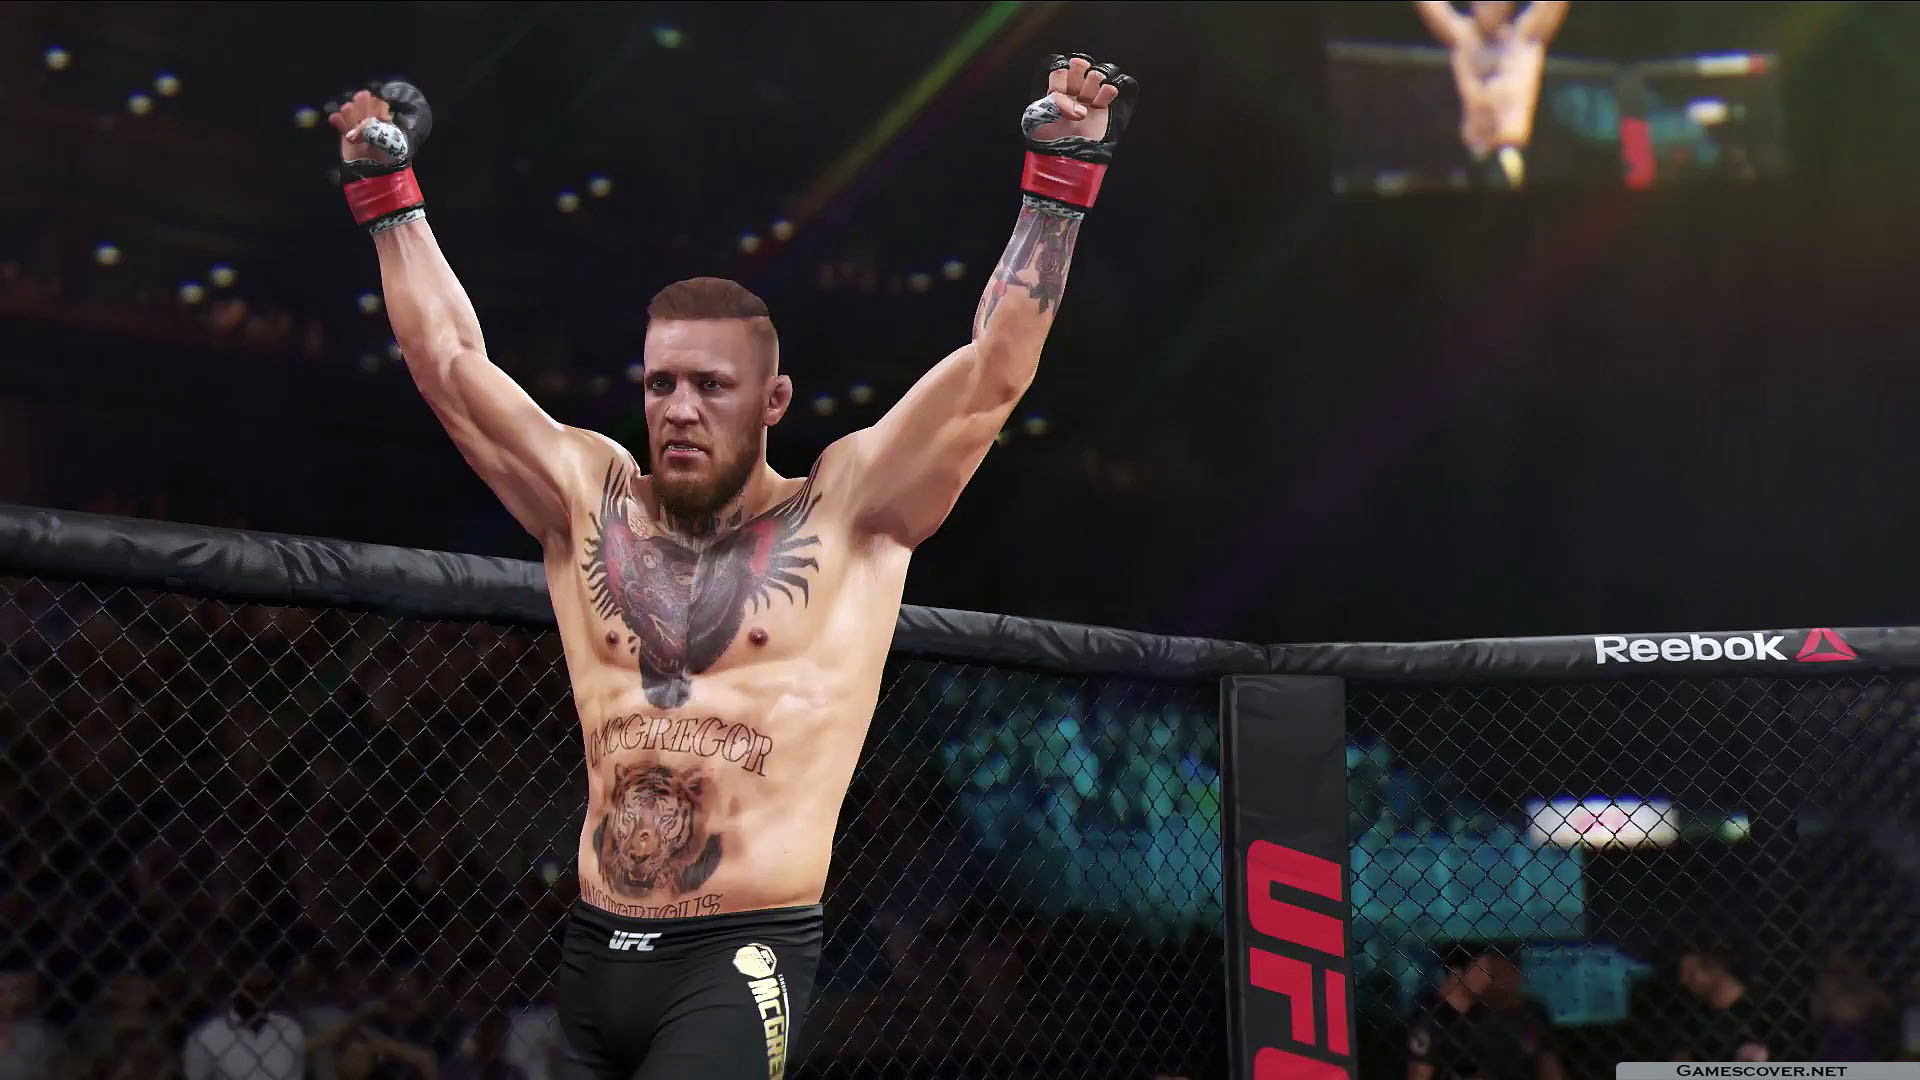 Ea sports ufc 2 wallpapers playstation xbox and pc games review ea sports ufc 2 cool hd wallpaper 1920x1080 voltagebd Gallery